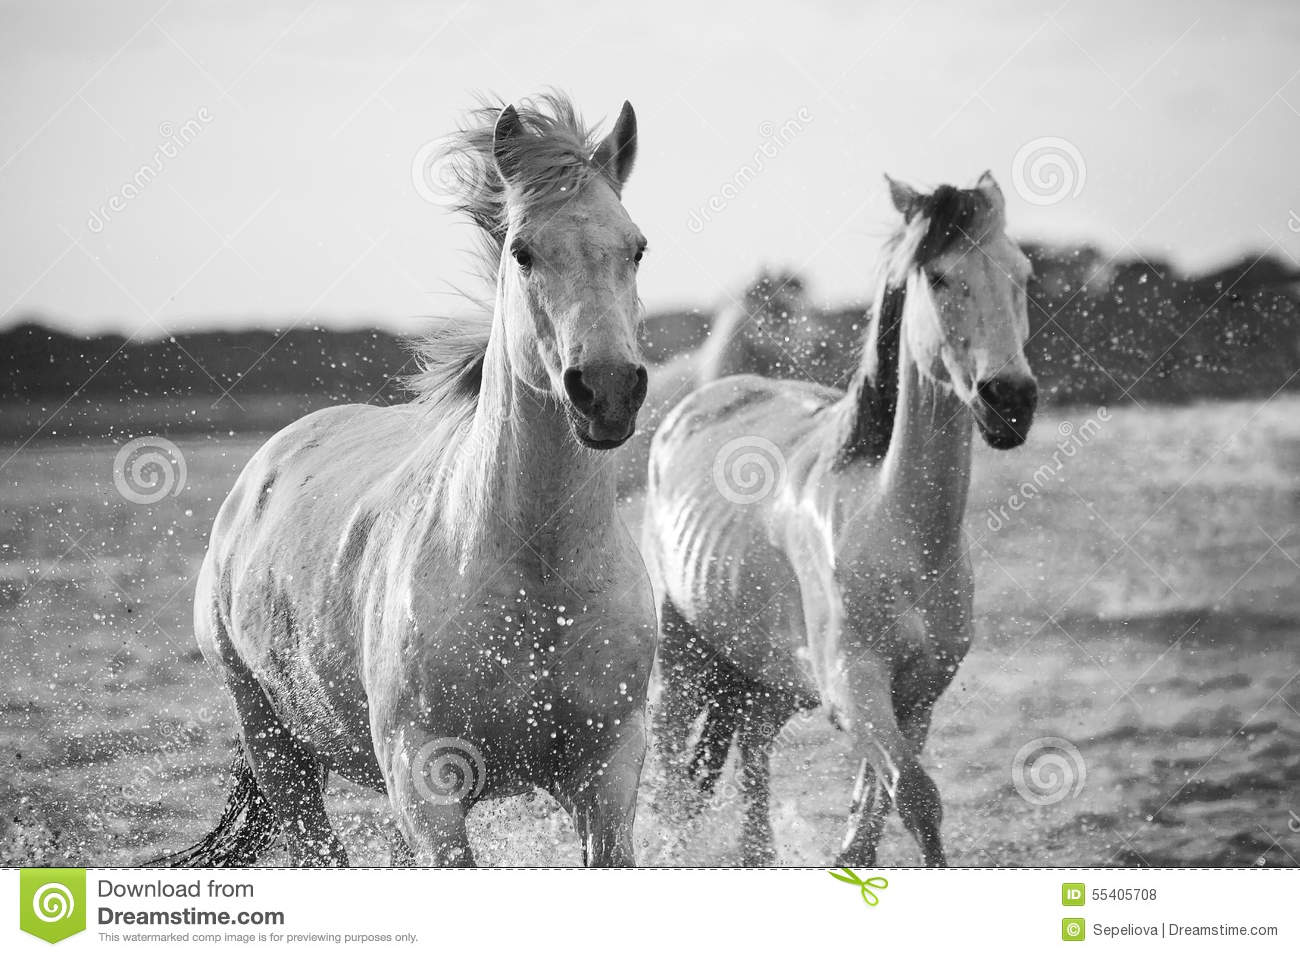 Horses Running In The Water Stock Photo - Image: 55405708